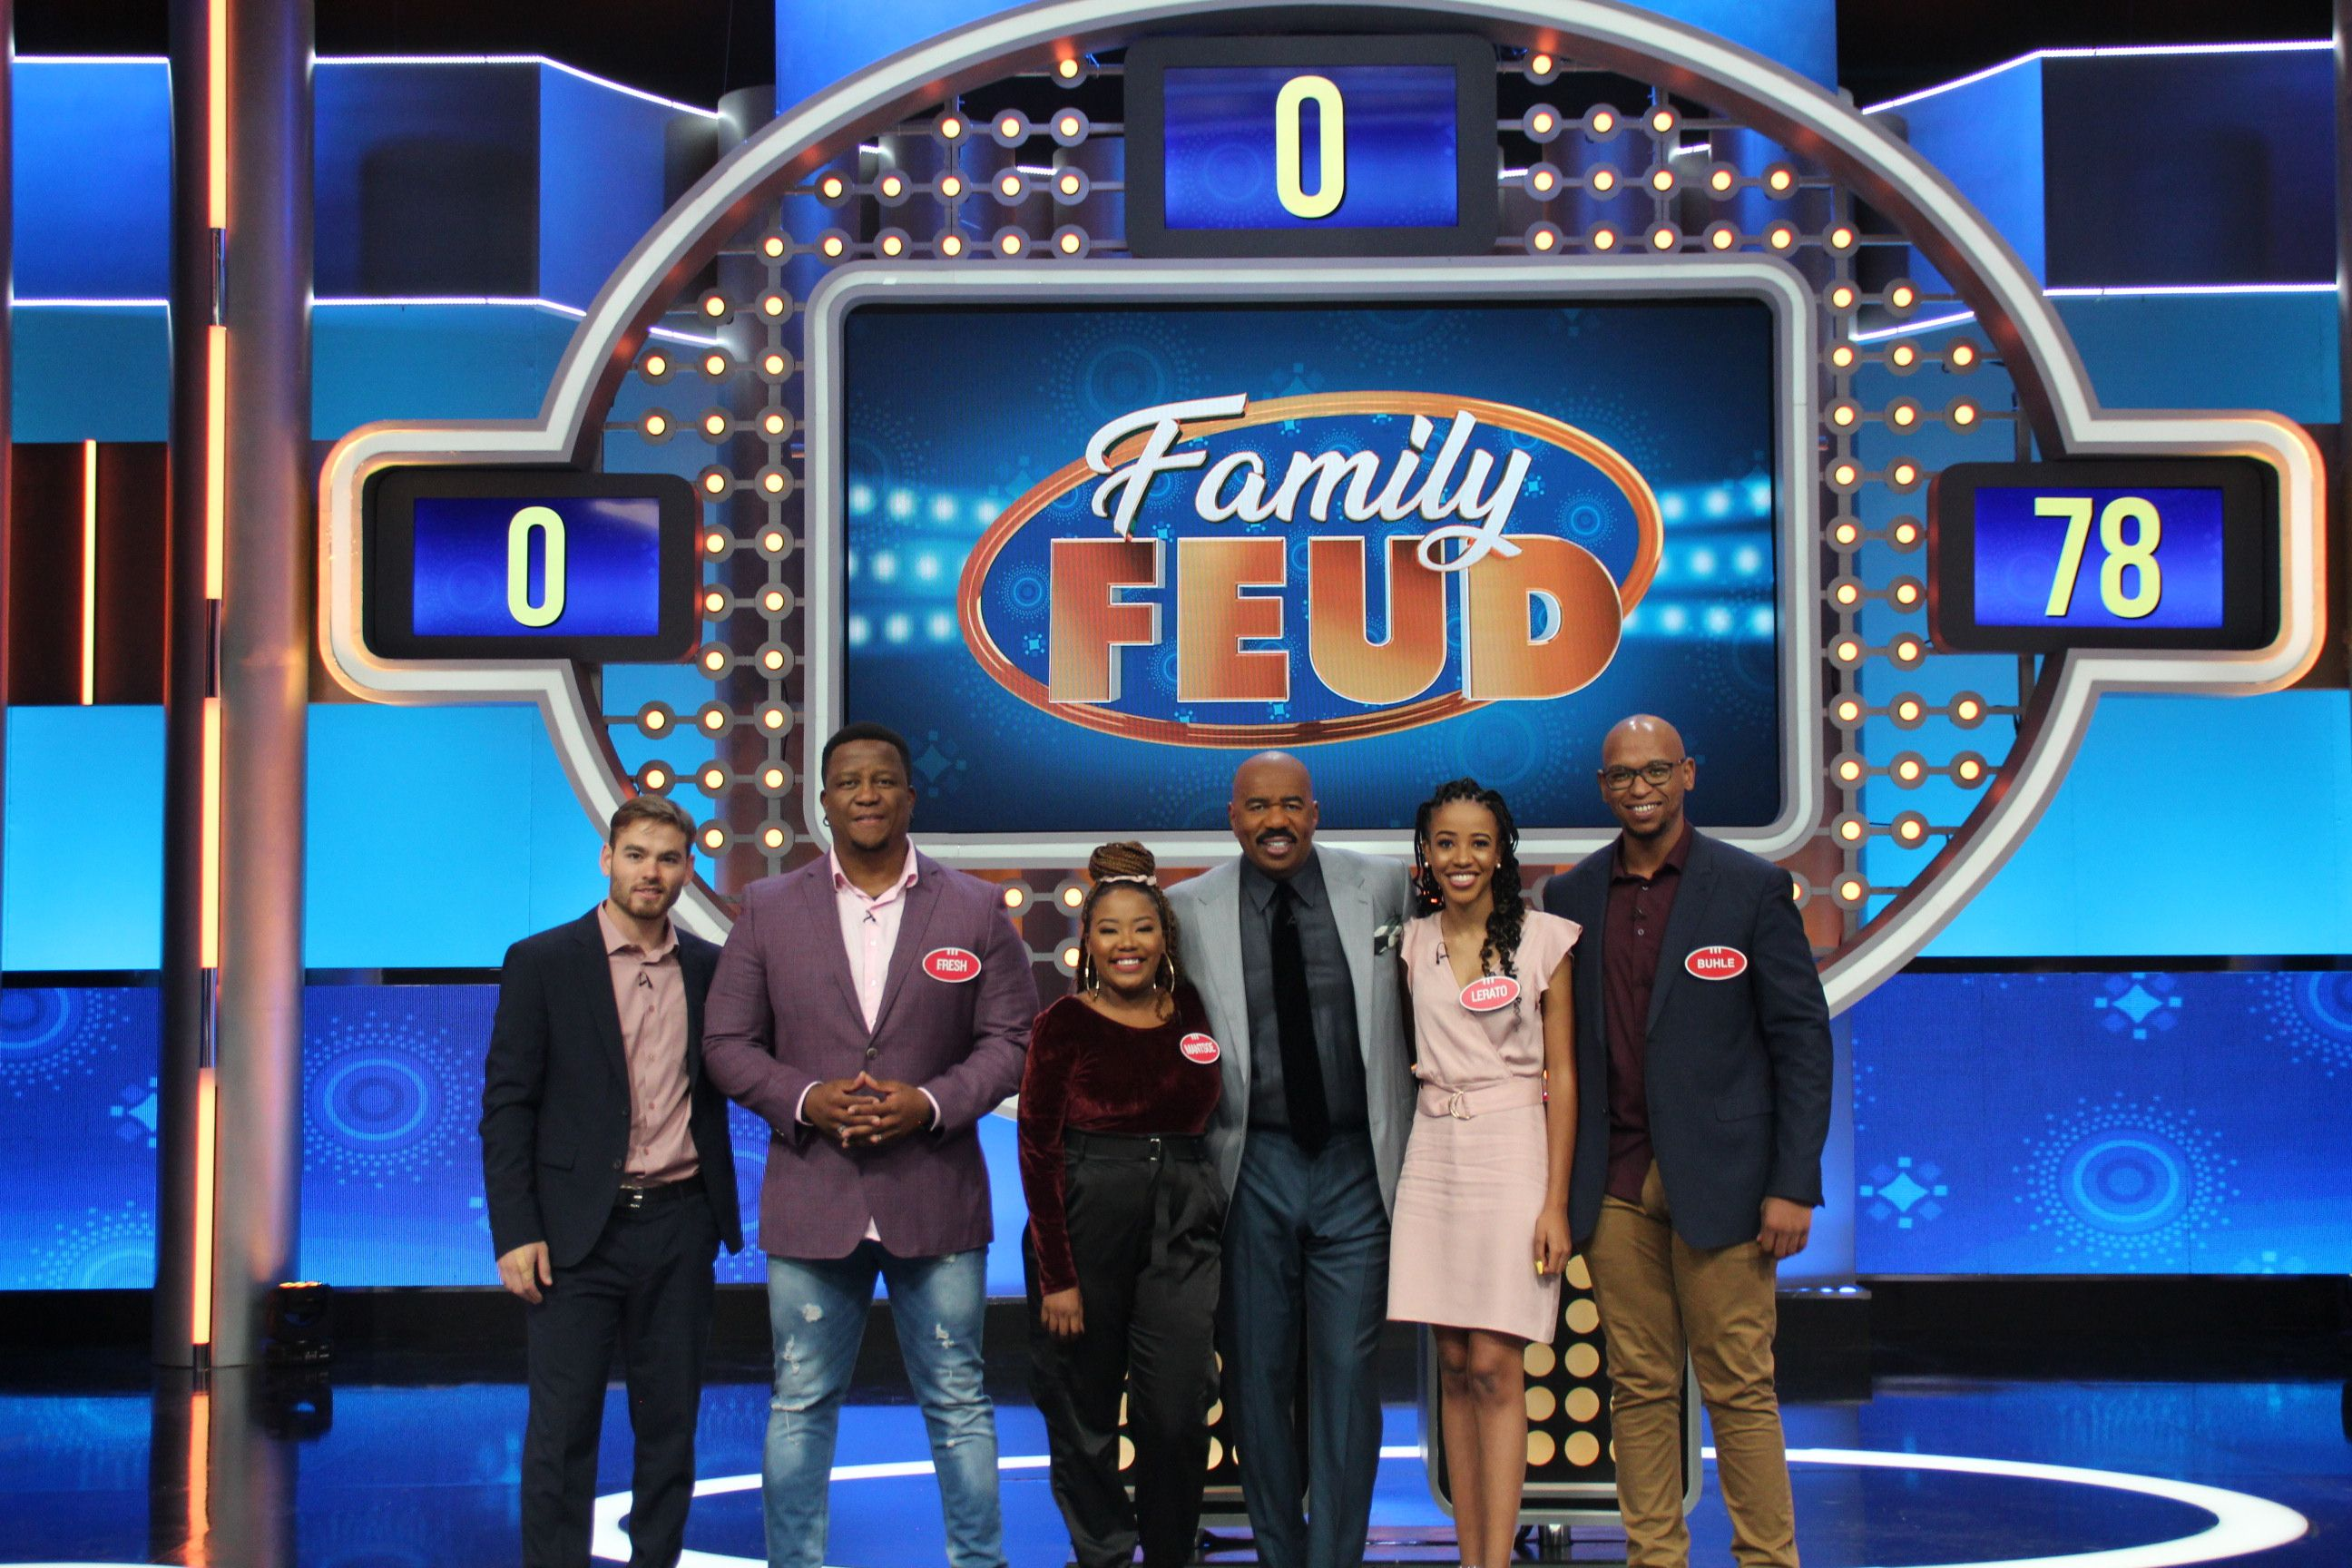 947 team on Family Feud South African